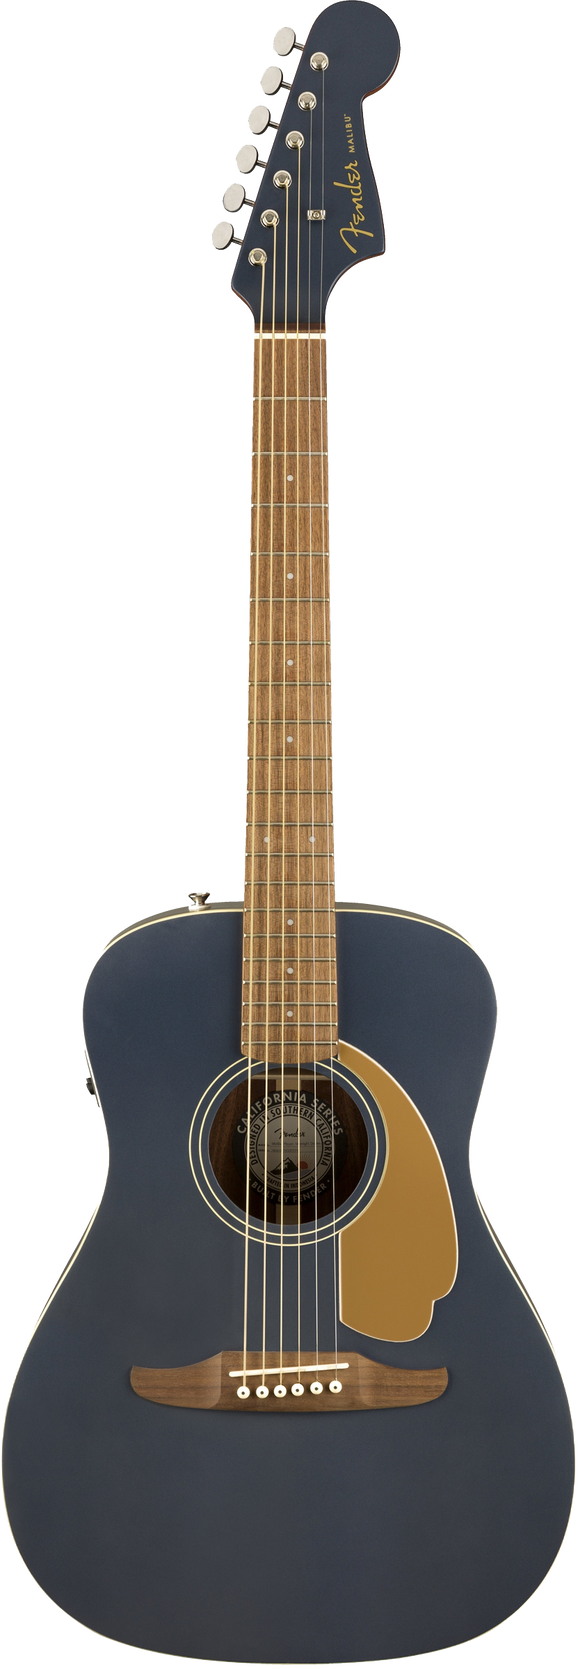 Fender Malibu Player Acoustic / Electric Guitar - Midnight Satin